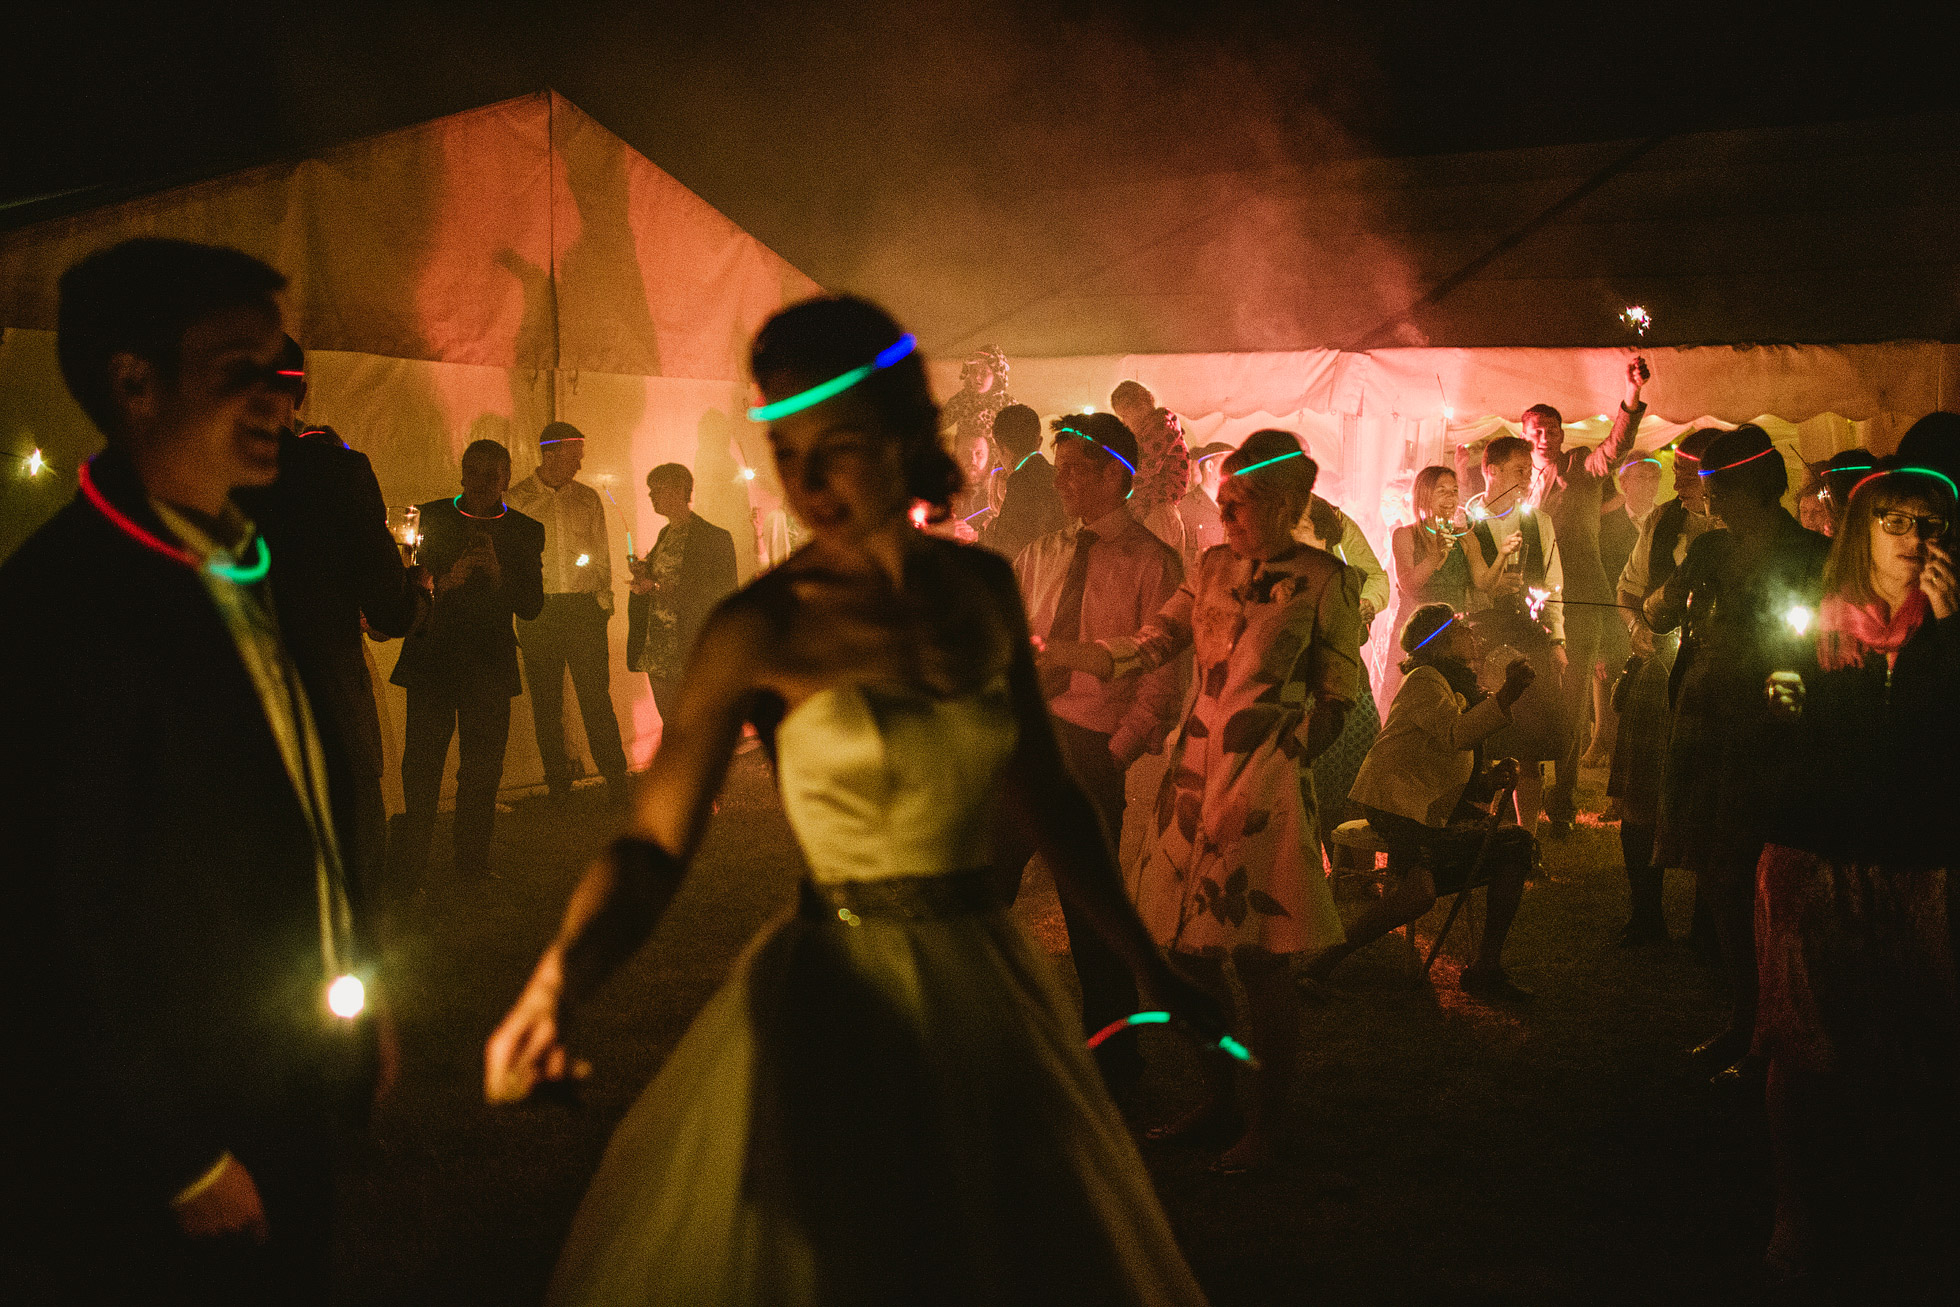 Glow Sticks Wedding Photography